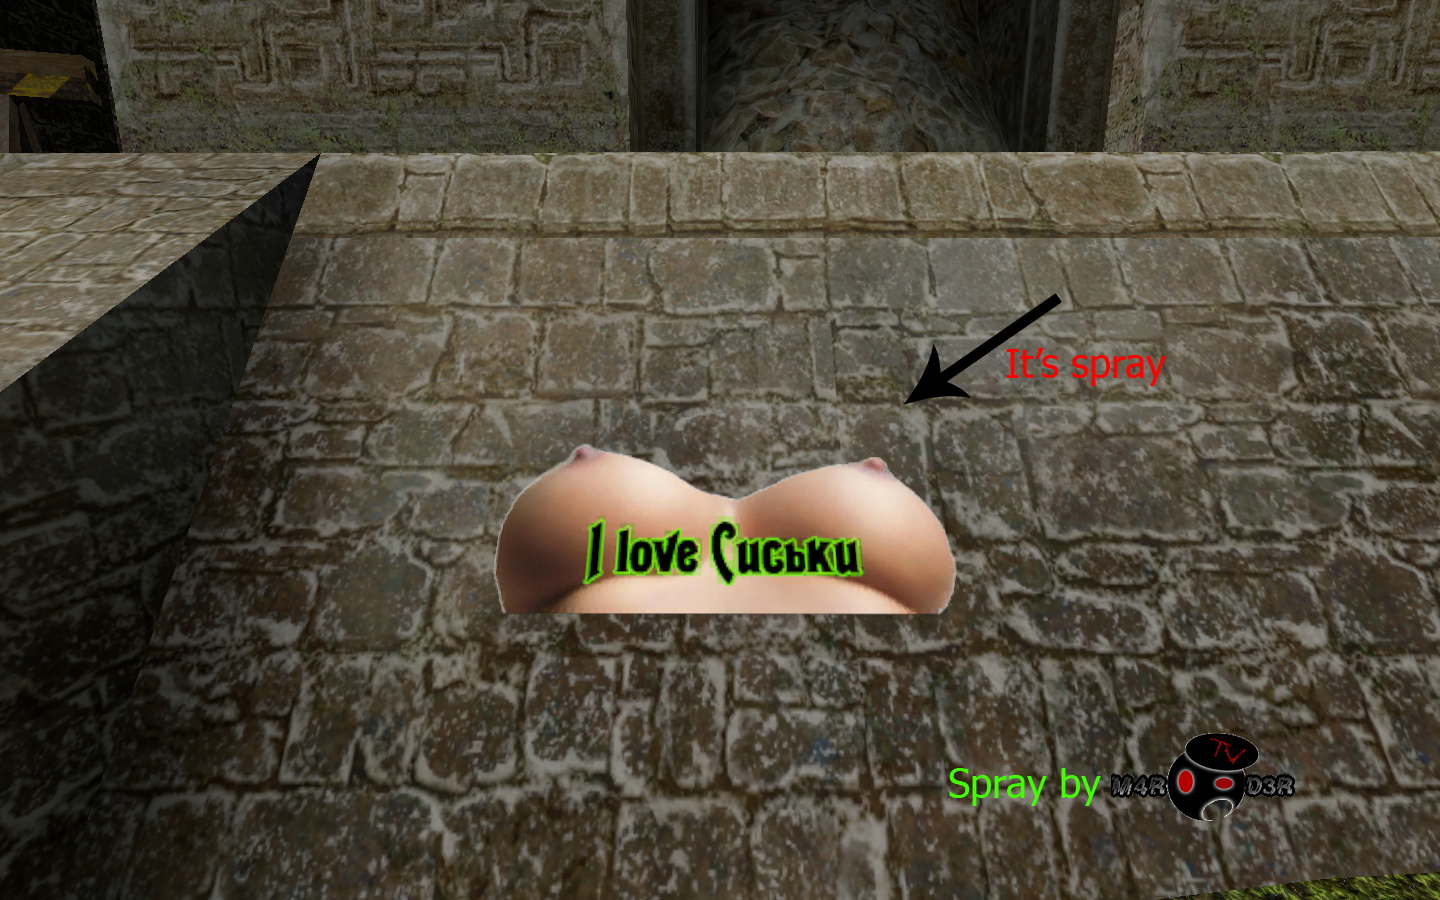 Counter strike sex hentia toons